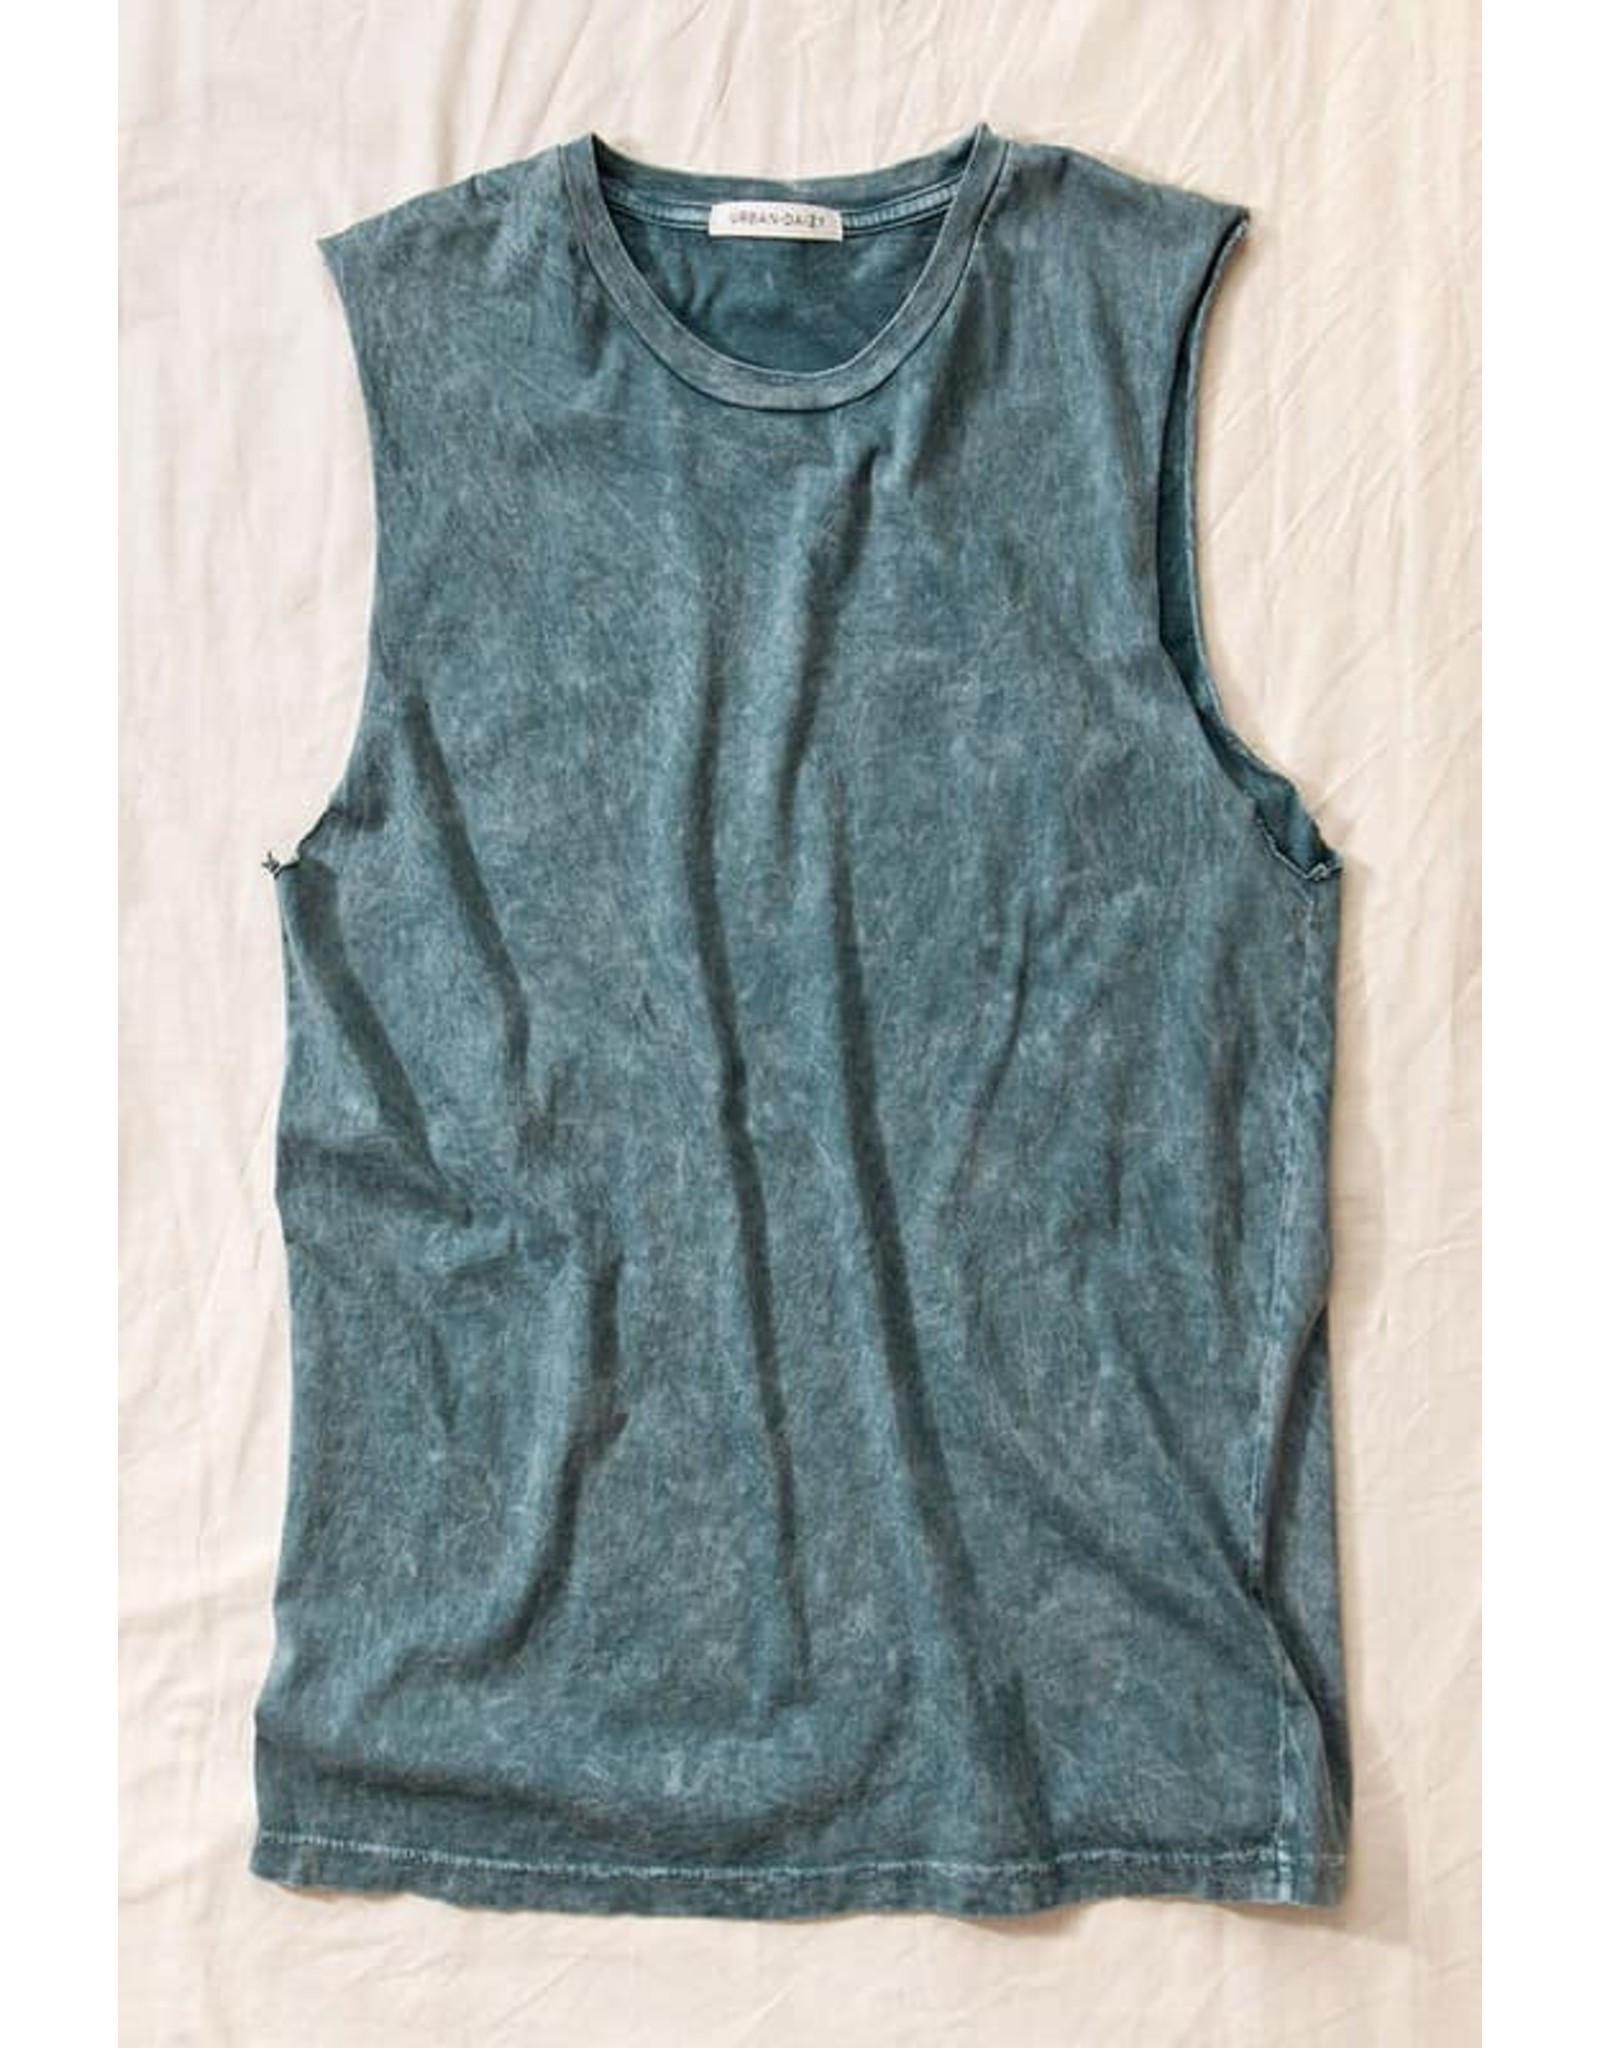 Vintage Mineral Washed Sleeveless Top